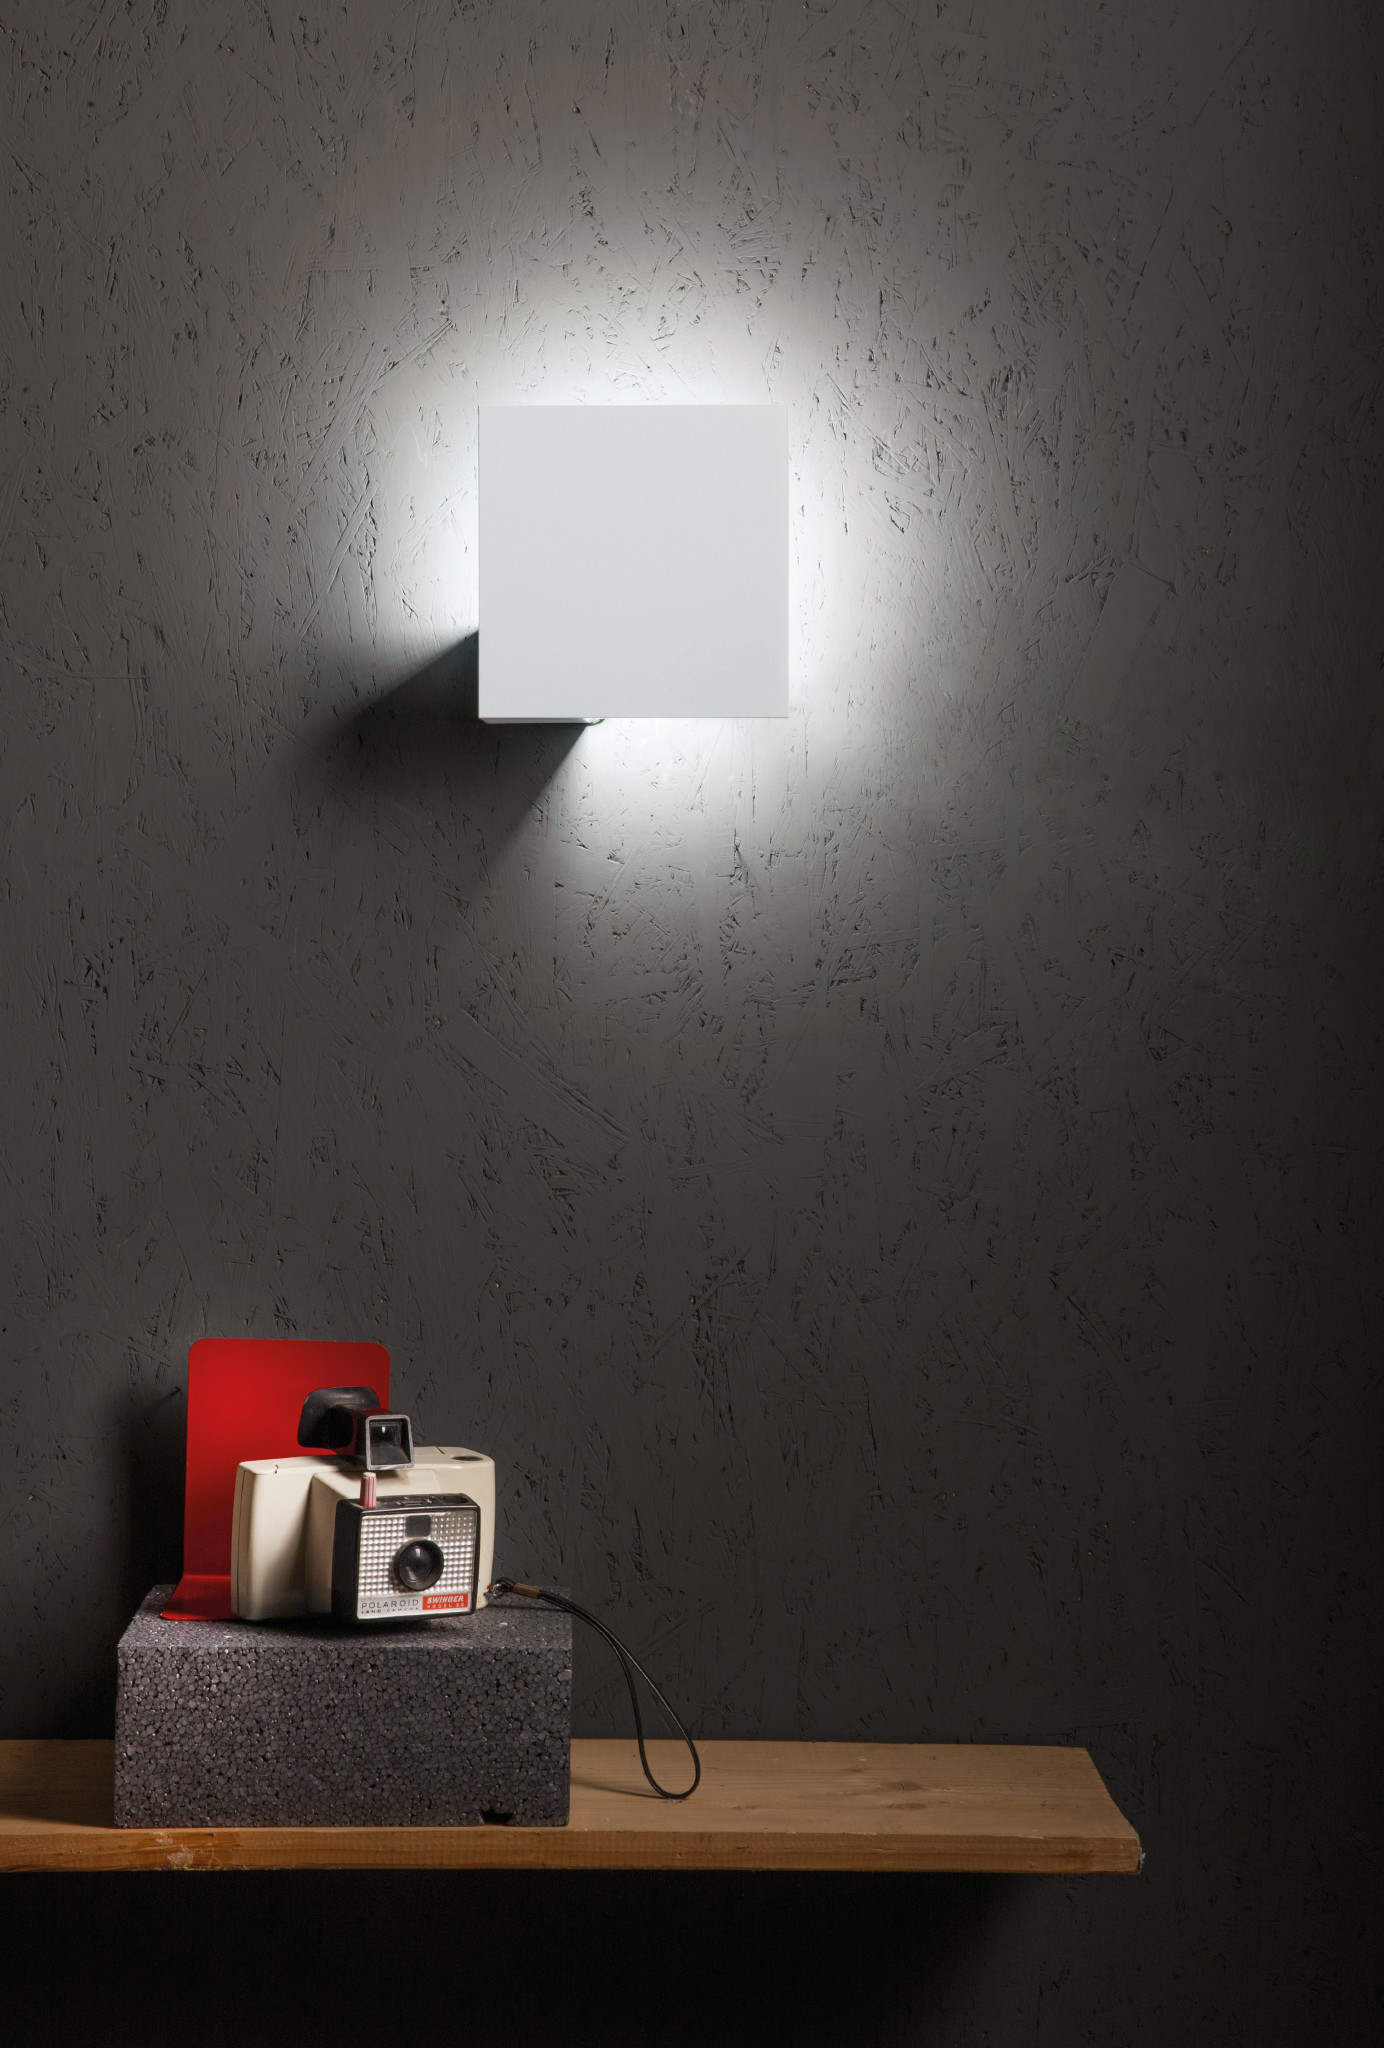 Study Room Lighting To Puzzle Square Wall Ceiling Flush Light By Studio Italia Design Installation Gallery Study Room Lighting